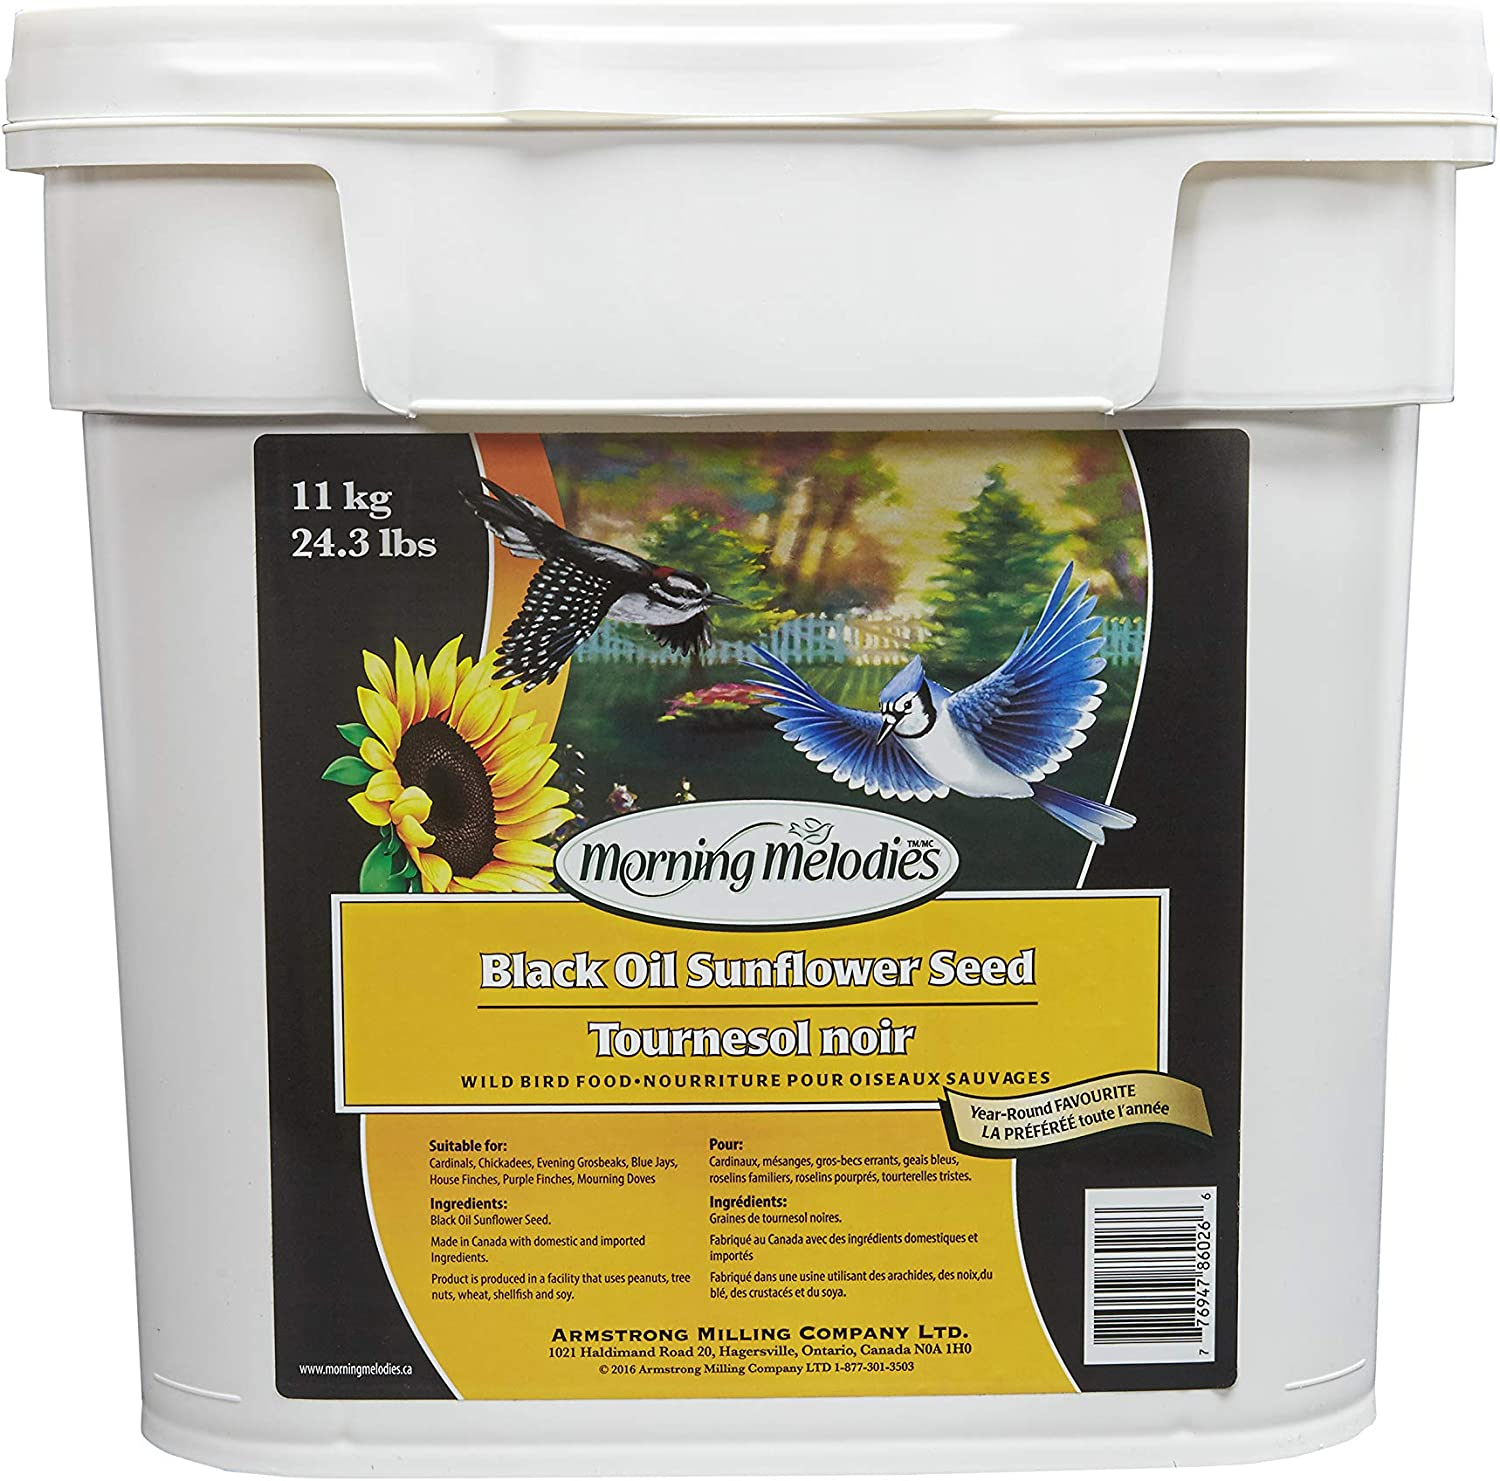 Morning Melodies 409263 Black Oil Sunflower Seed Pail 11kg, 1 Piece, Large